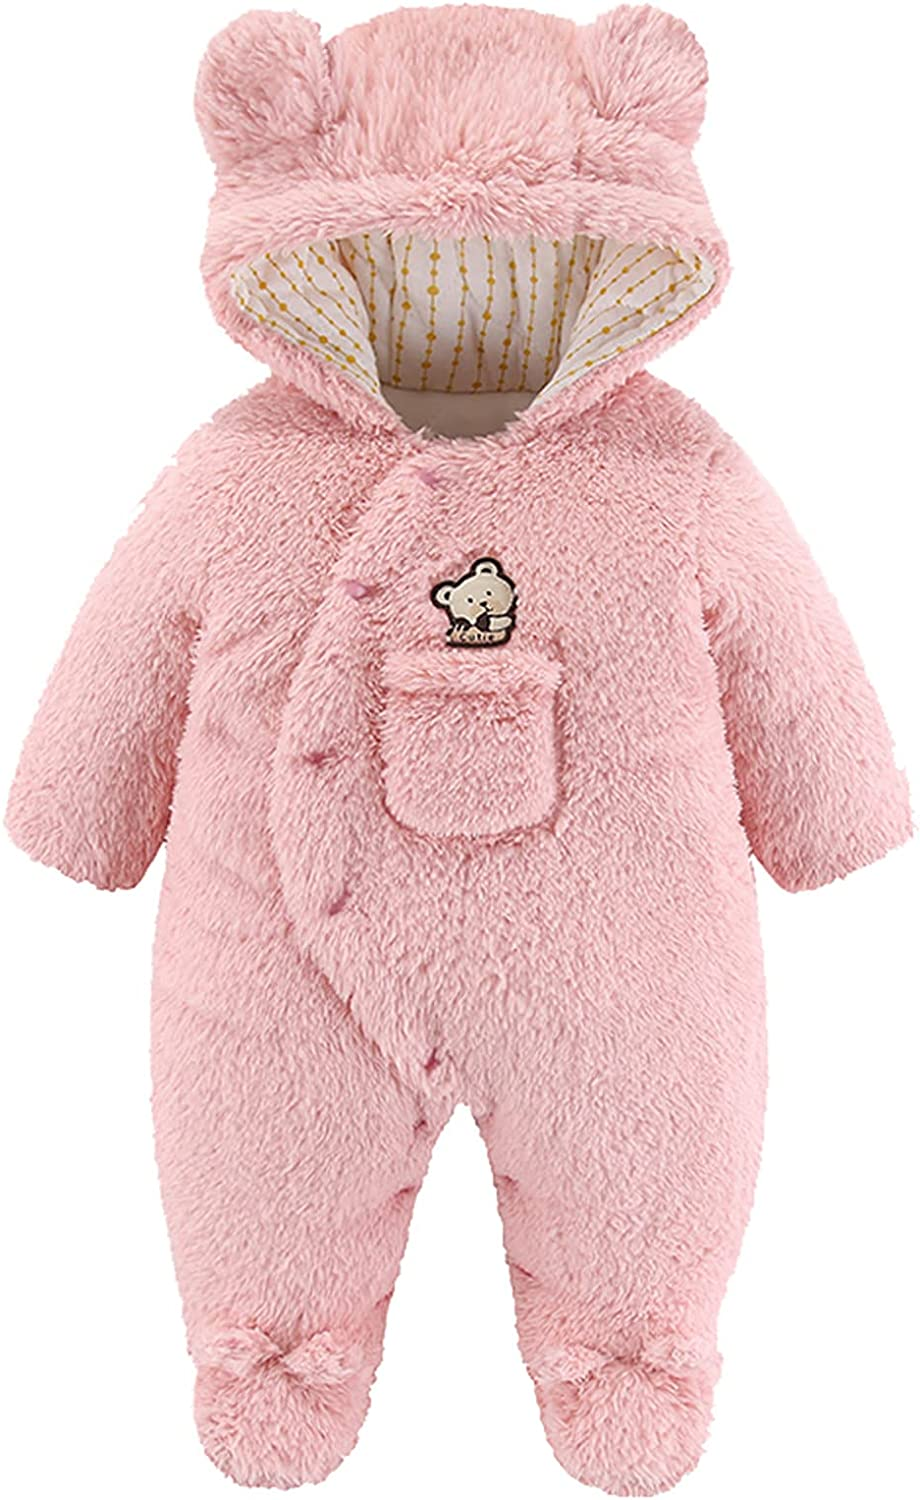 FORESTIME Kids Hoodie Coat Max 70% OFF Infant Baby Max 51% OFF Cartoon Girls Bear Boys H